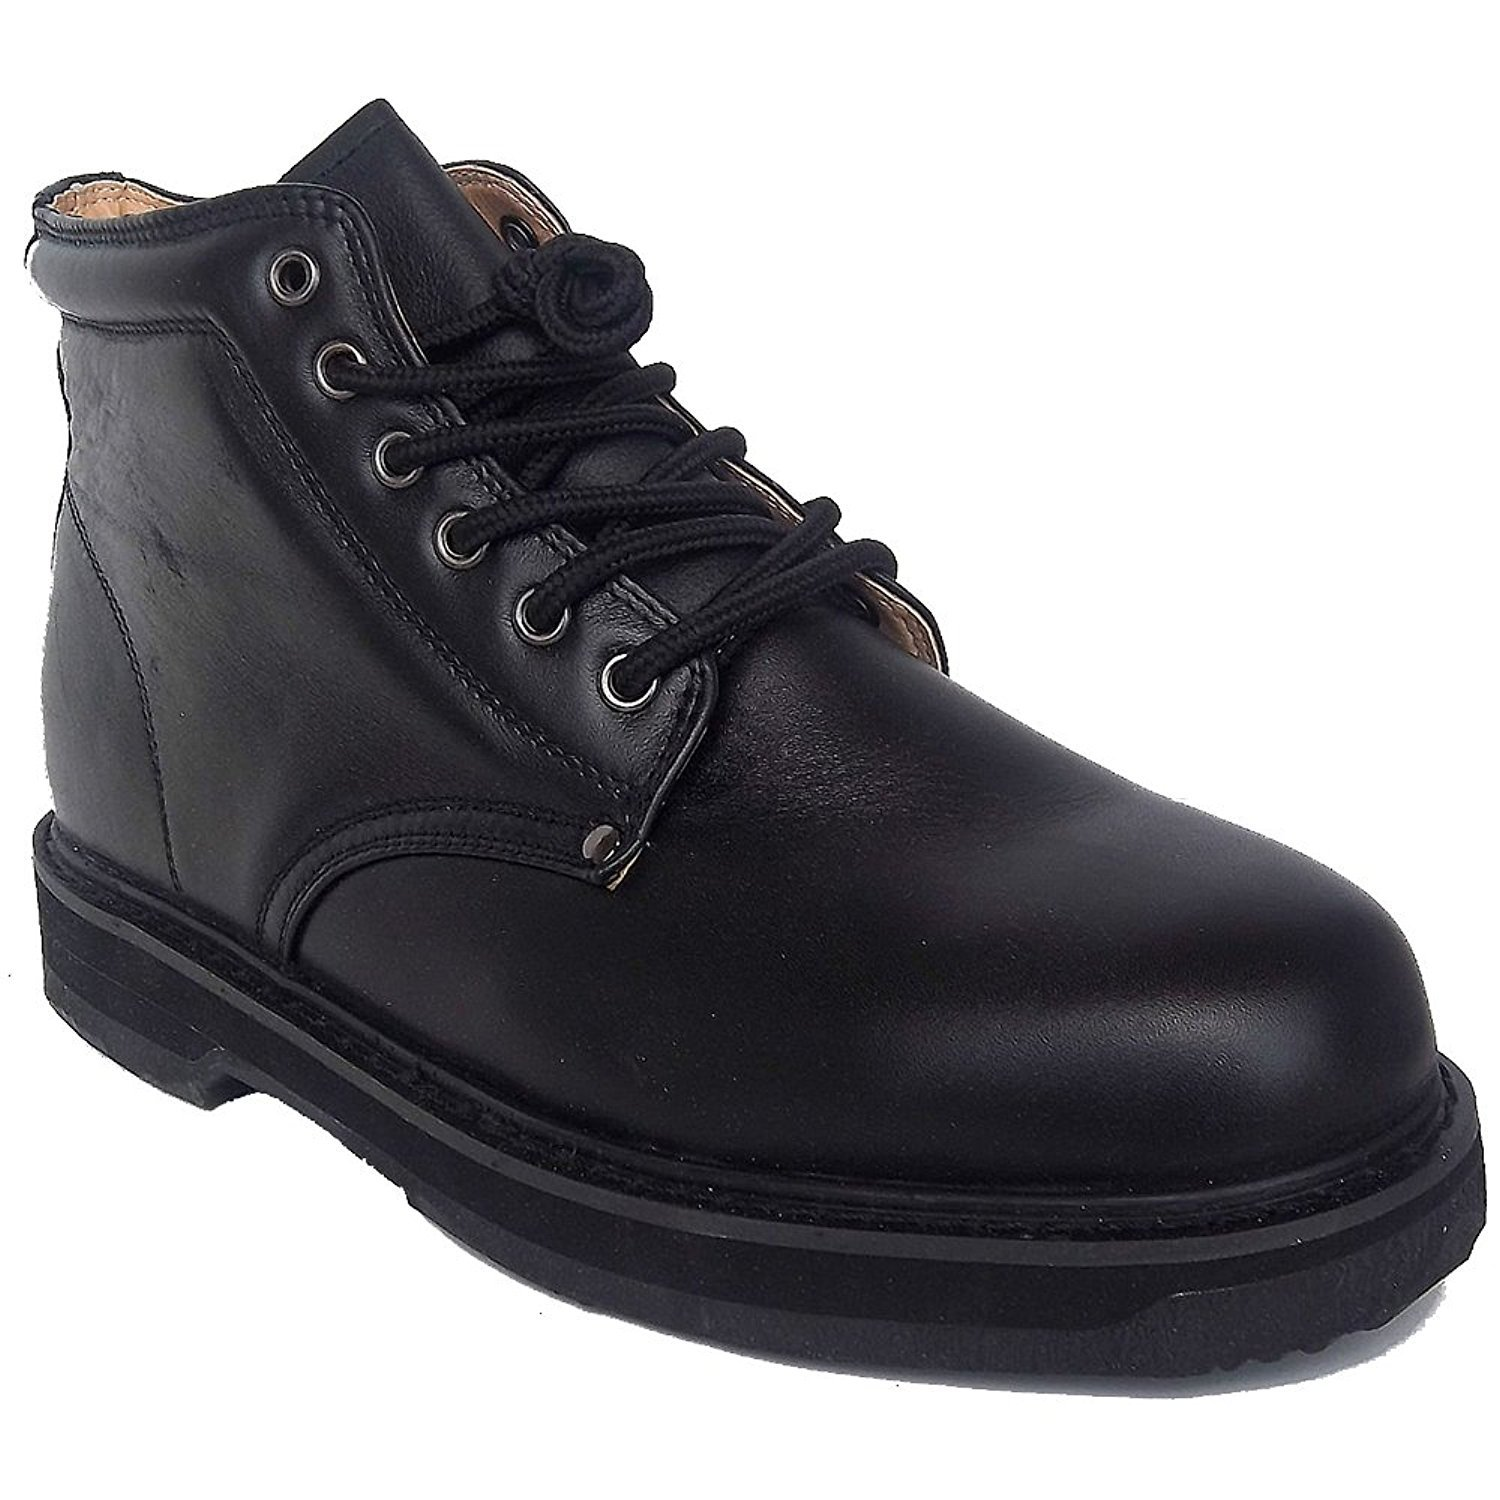 Vegace 9005 Mens Black Leather Oil Slip Resistant Occupational Work Hiking Boots